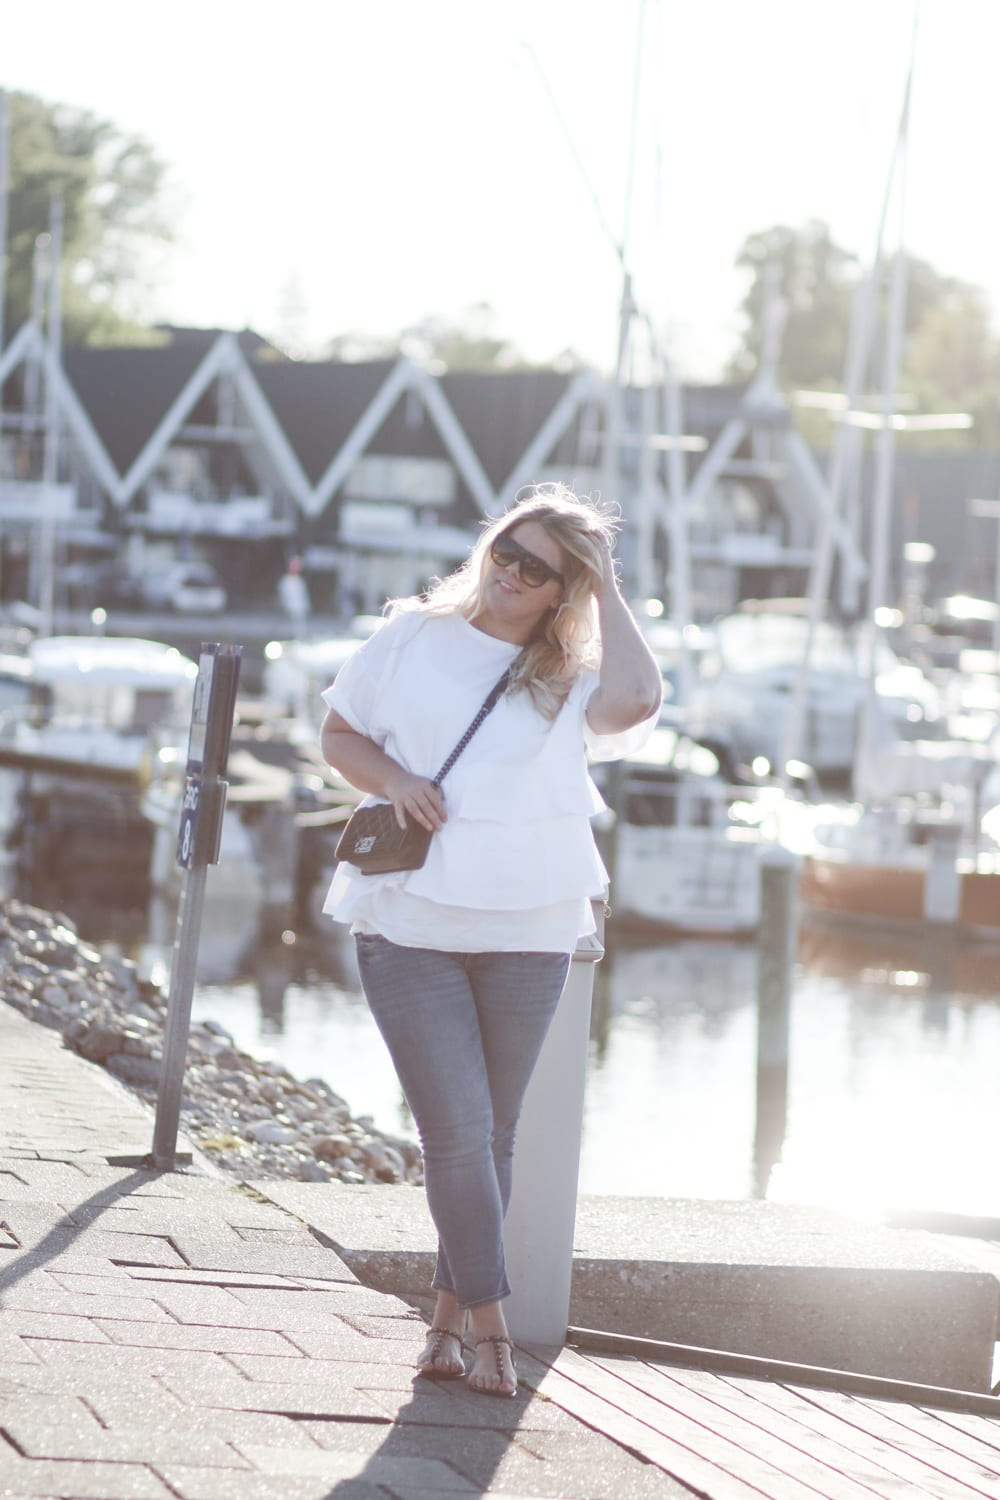 acie-outfit-rungsted-zara-tee-flaeser-celine-9-of-23